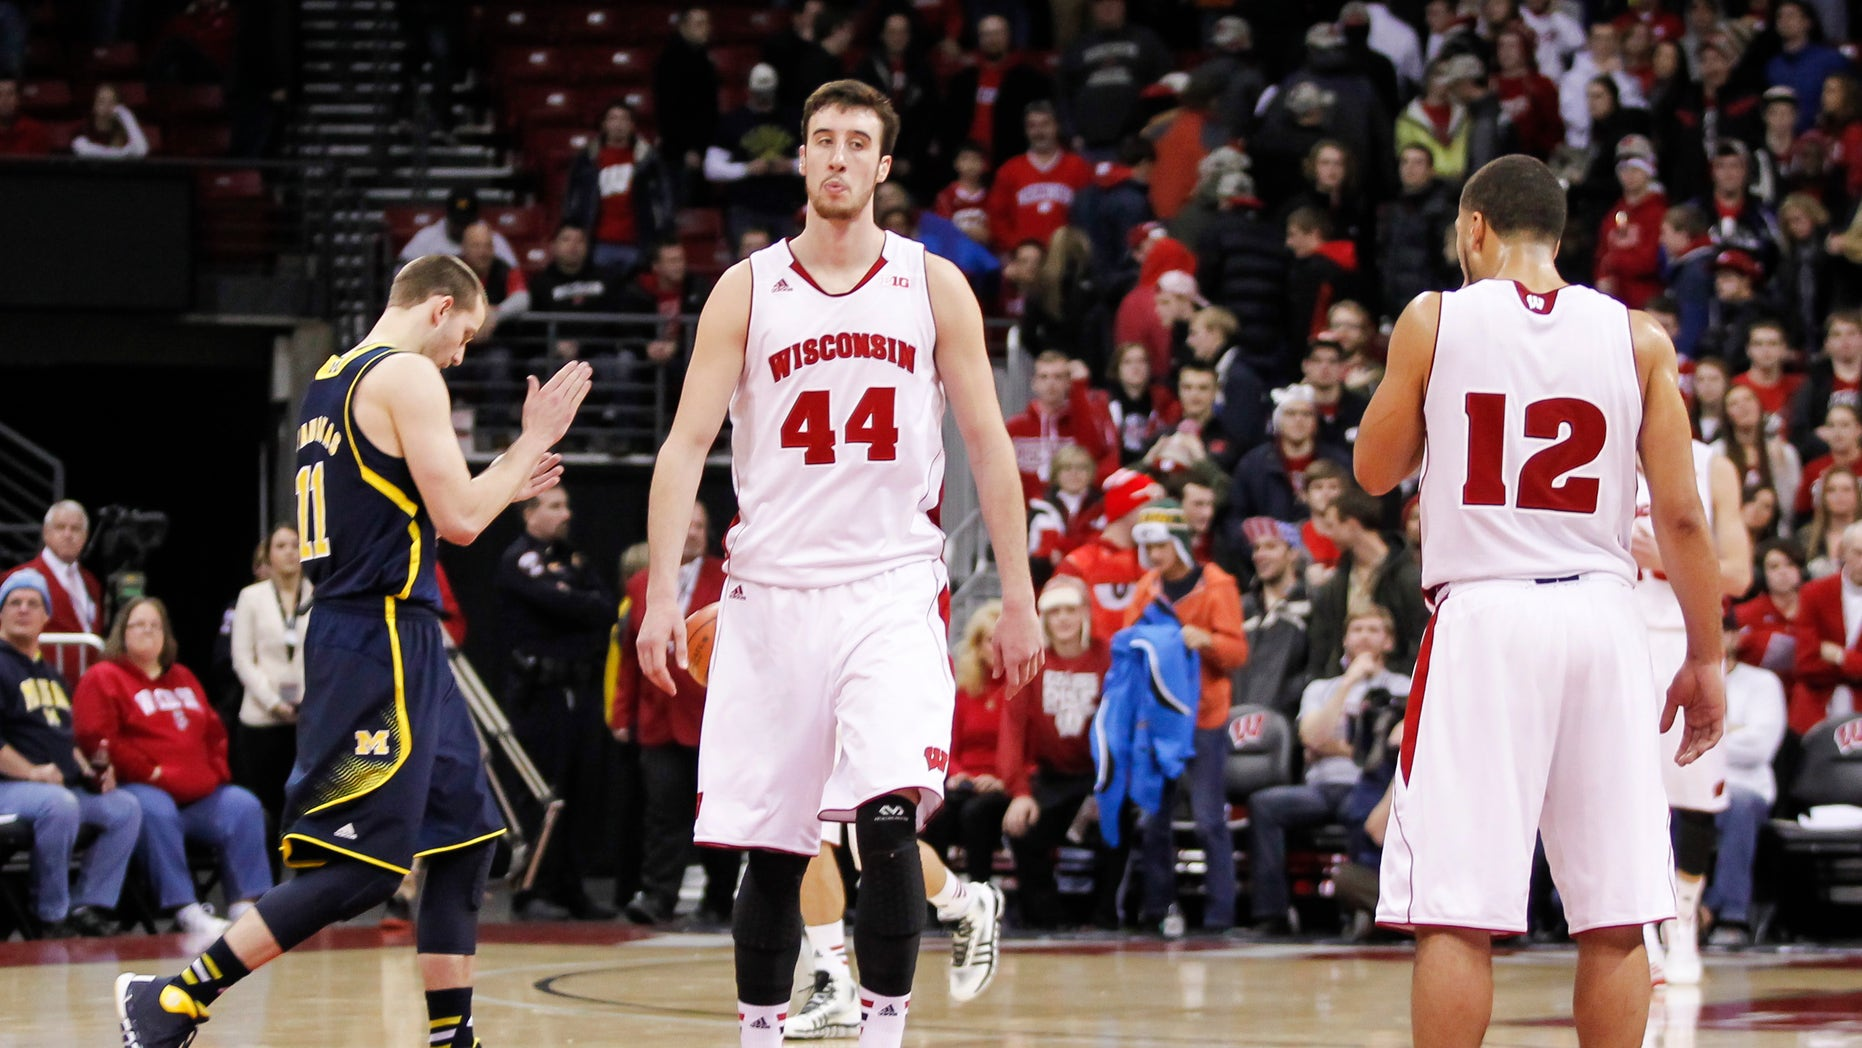 Wisconsin's Frank Kaminsky (44) and Traevon Jackson (12) walk off the court after the team's 77-70 loss to Michigan in an NCAA college basketball game Saturday, Jan. 18, 2014, in Madison, Wis.  (AP Photo/Andy Manis)